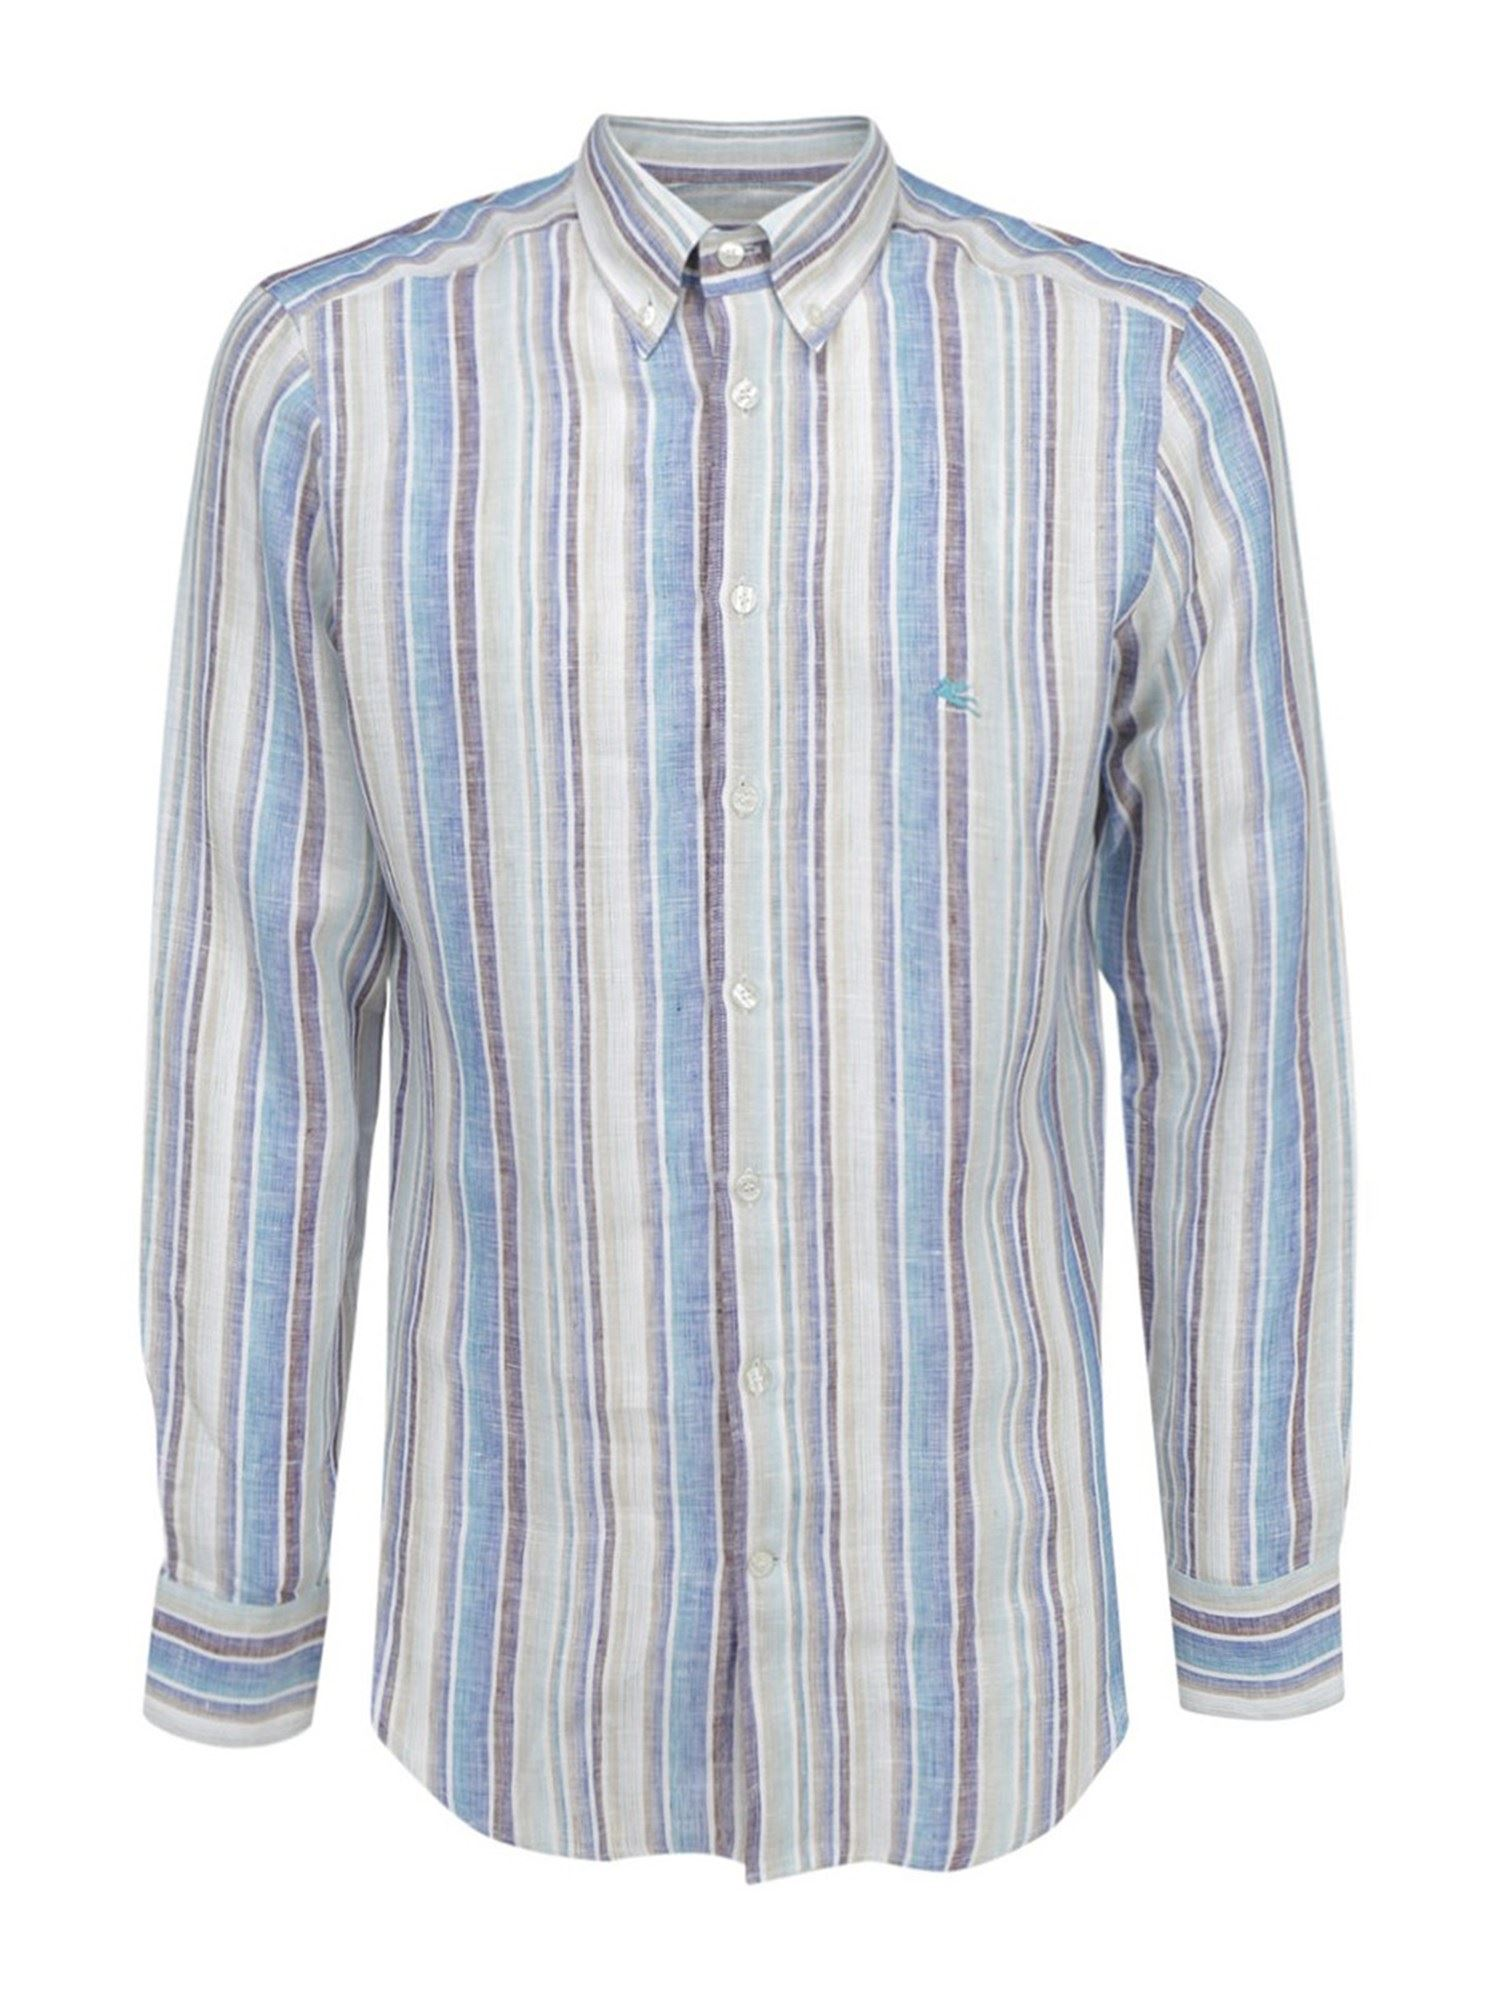 Etro LINEN STRIPED SLIM FIT SHIRT IN LIGHT BLUE